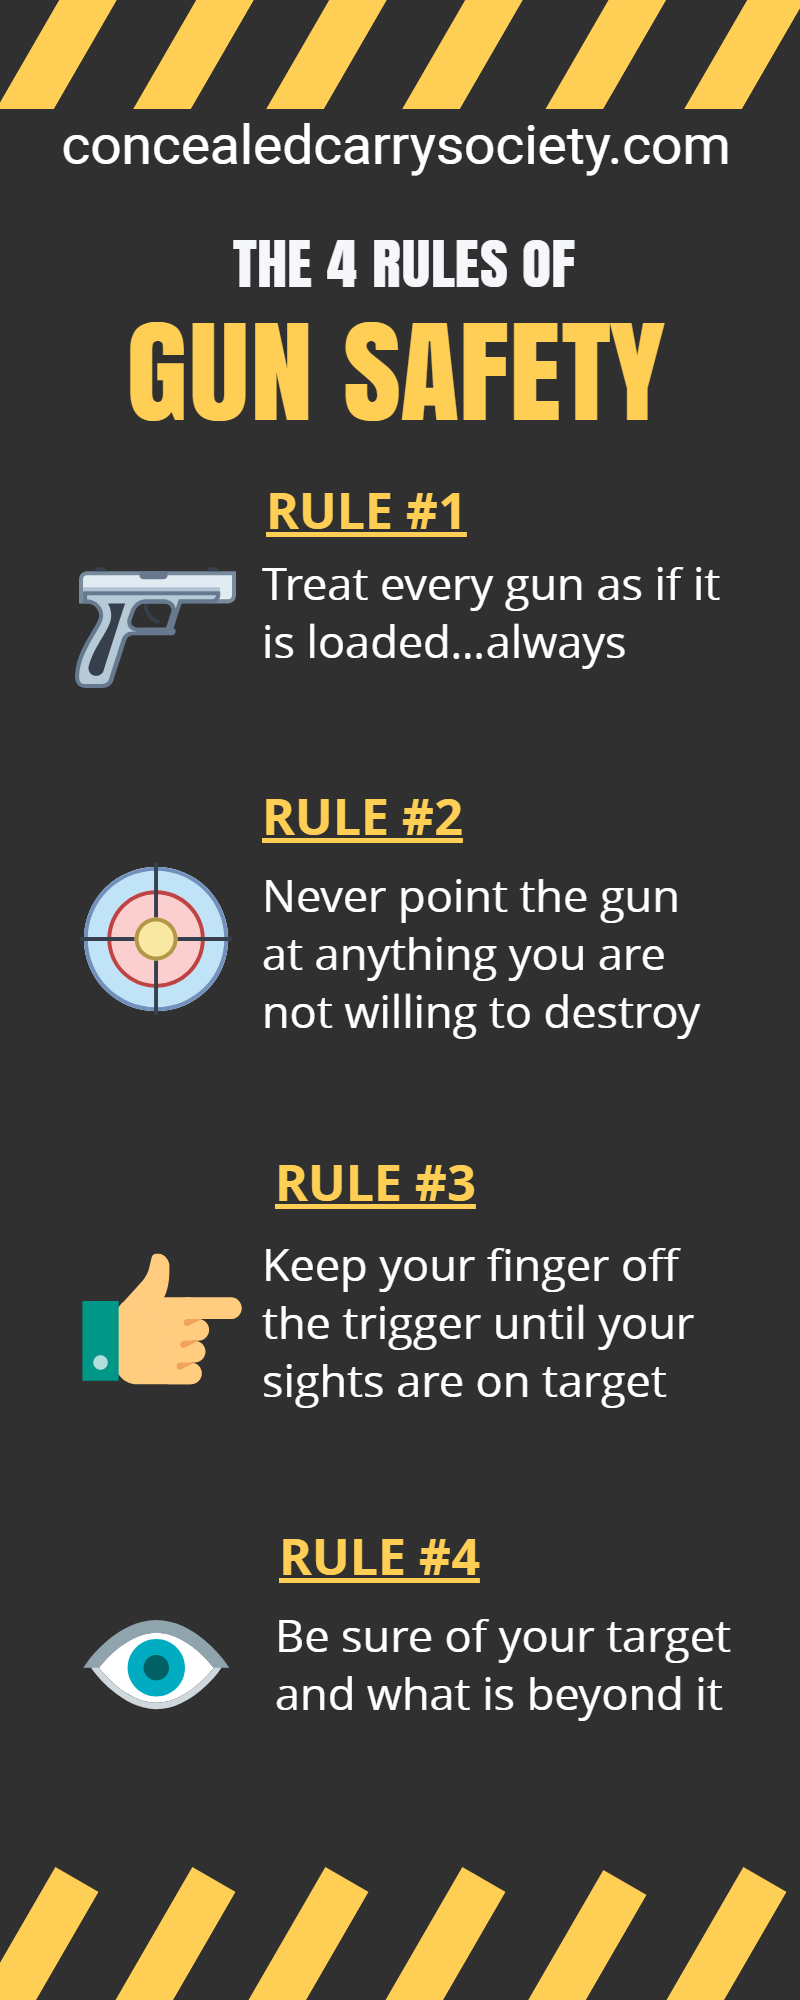 Pin on Concealed Carry Articles, Reviews, and Resources